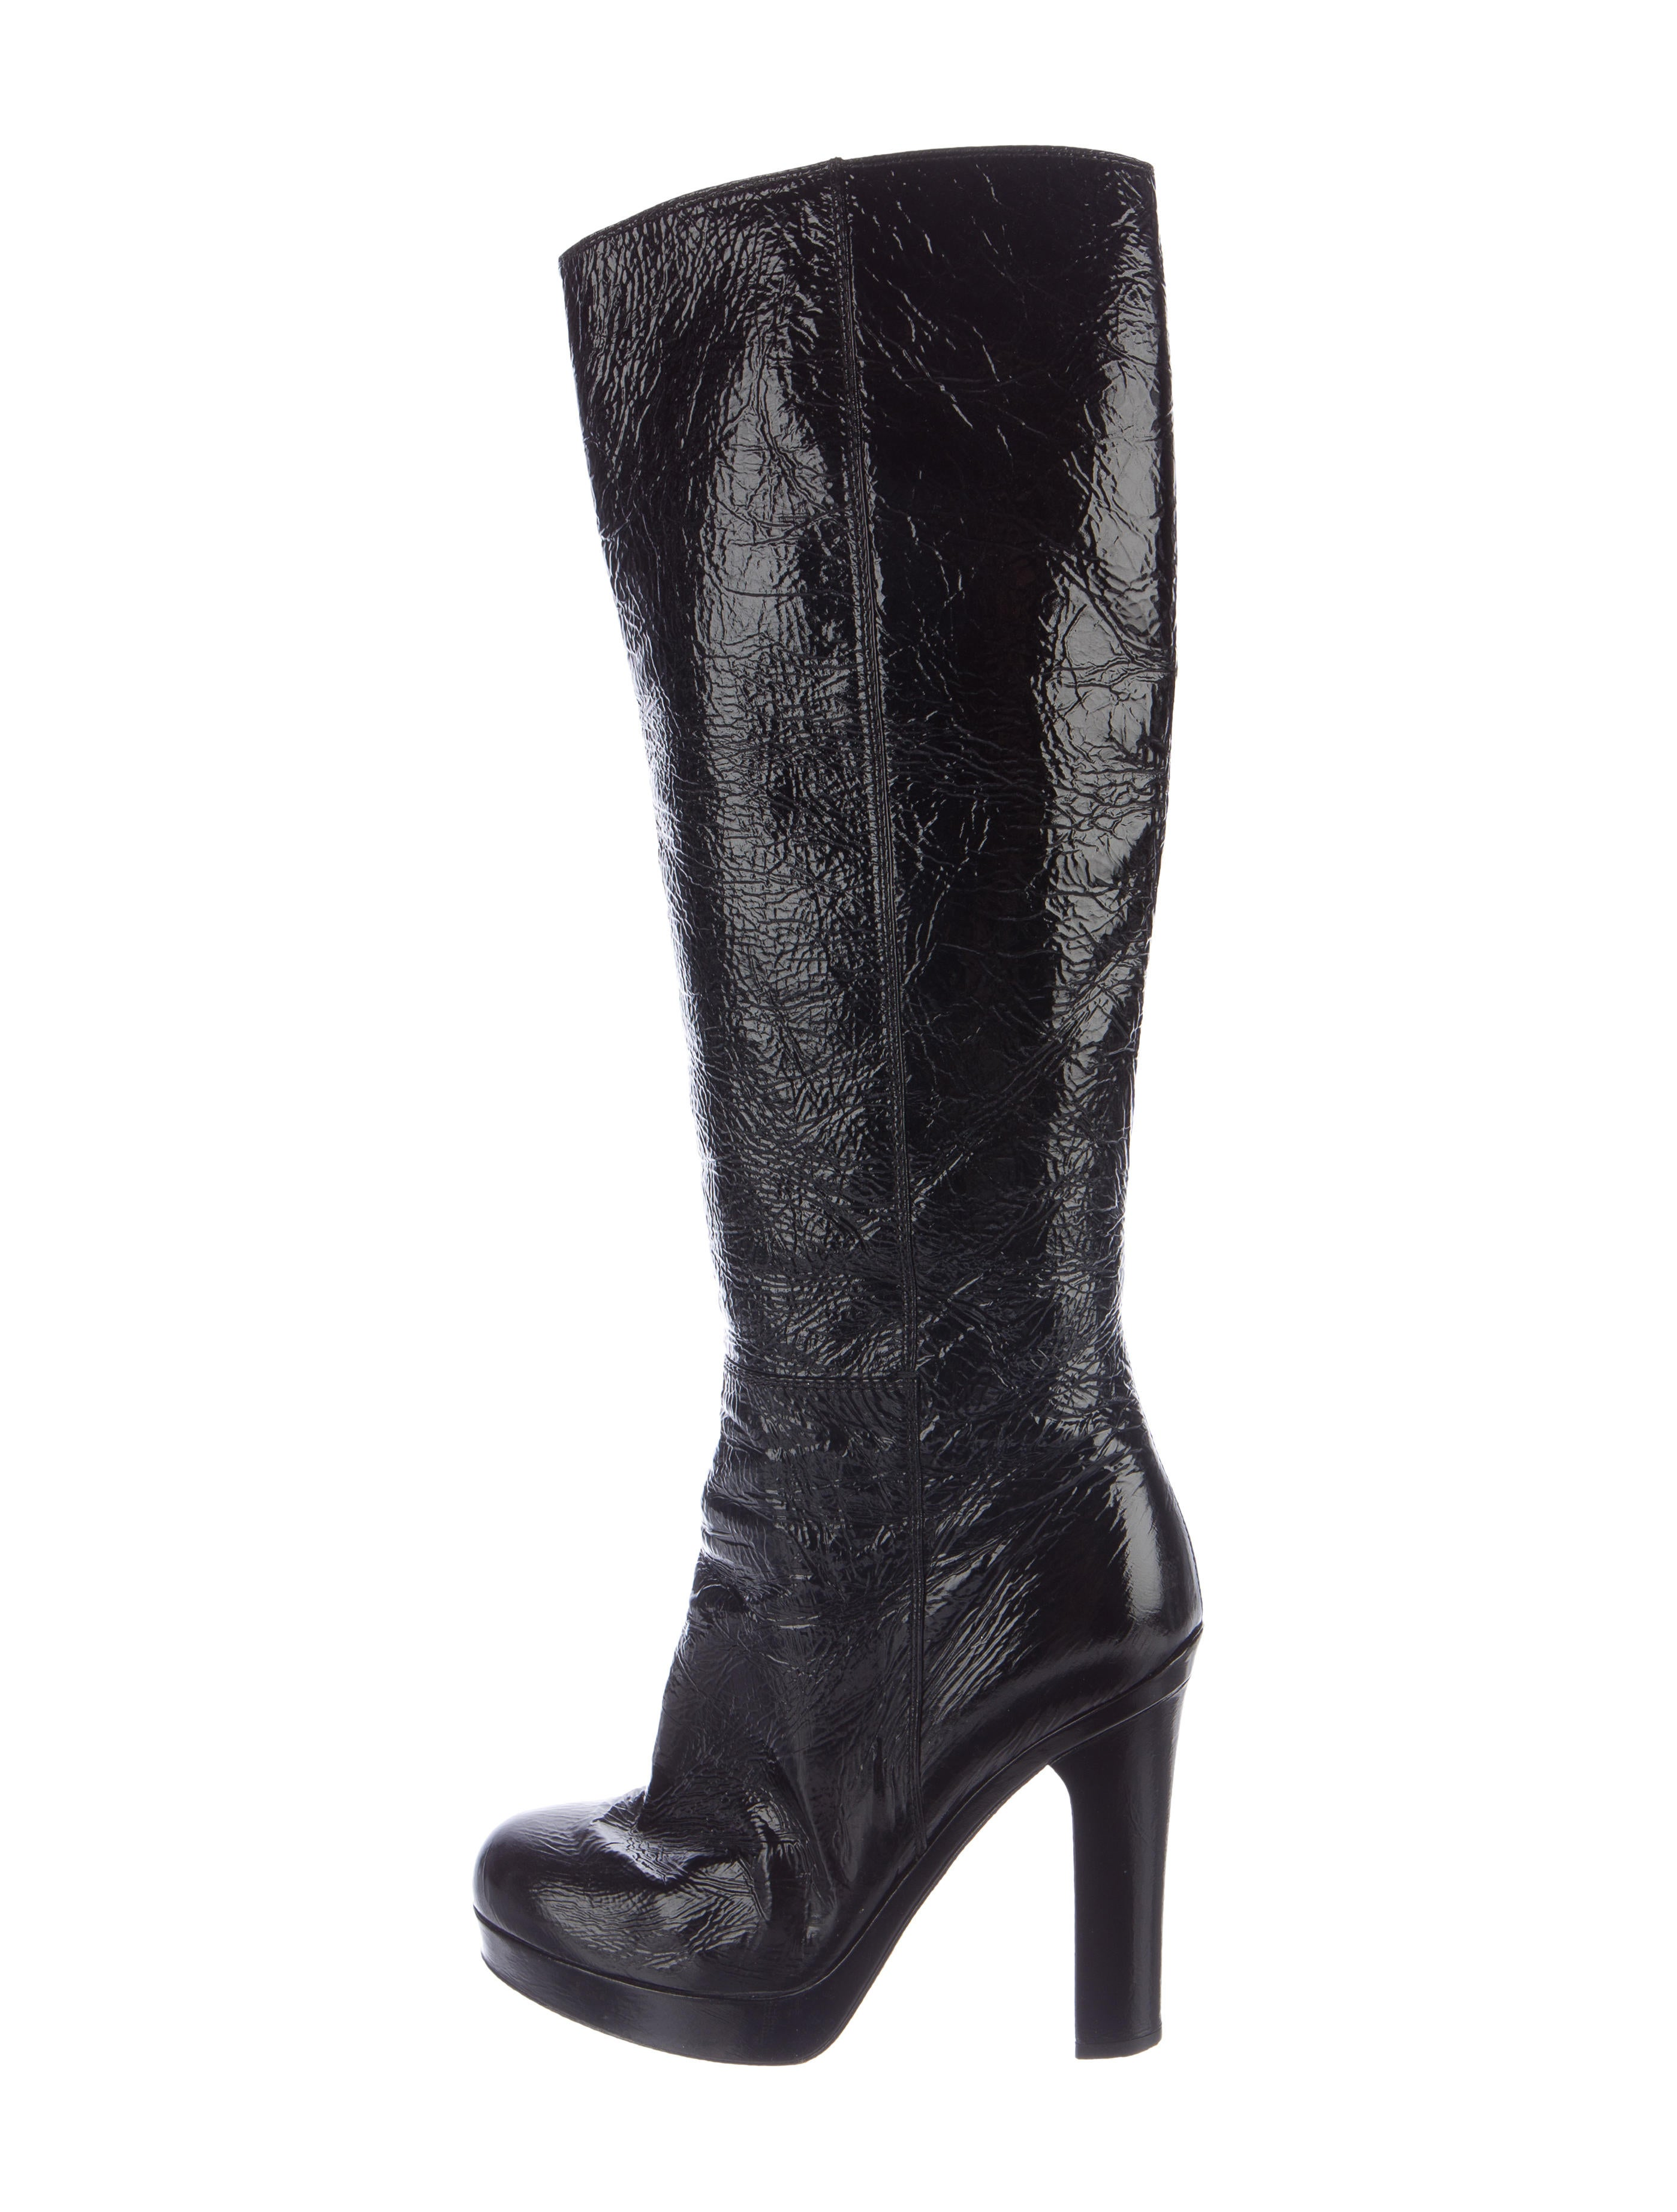 yves laurent patent leather knee high boots shoes